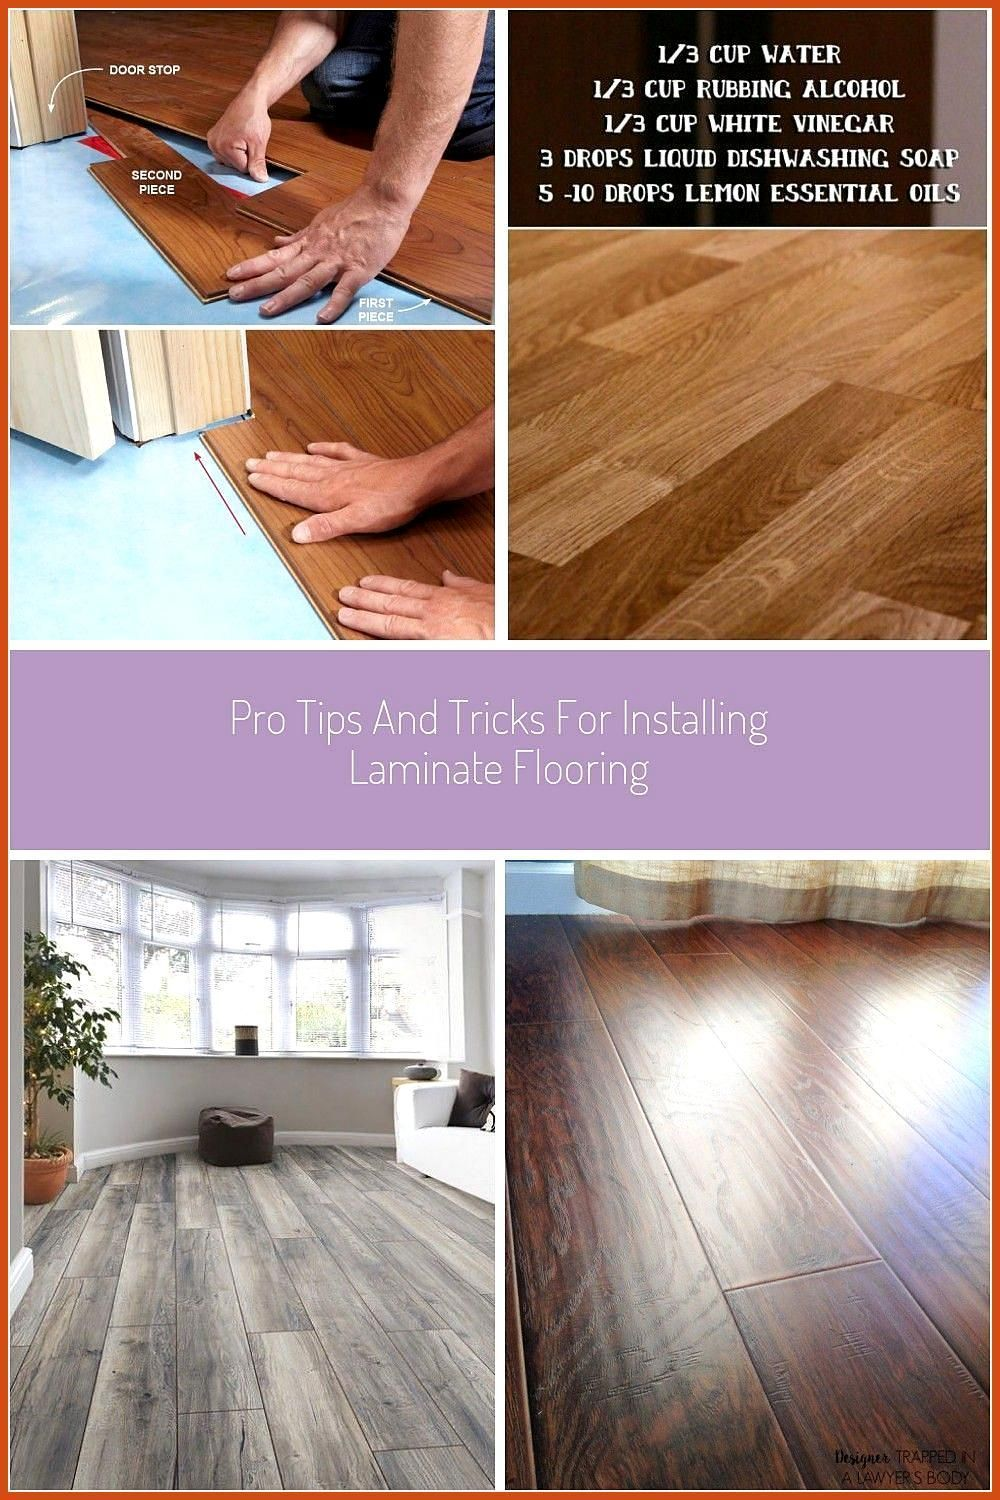 12 Tips For Installing Laminate Flooring Laminate Floors Tips To Avoid Humps Bu Avoid Floo In 2020 Installing Laminate Flooring Floor Makeover Laminate Flooring